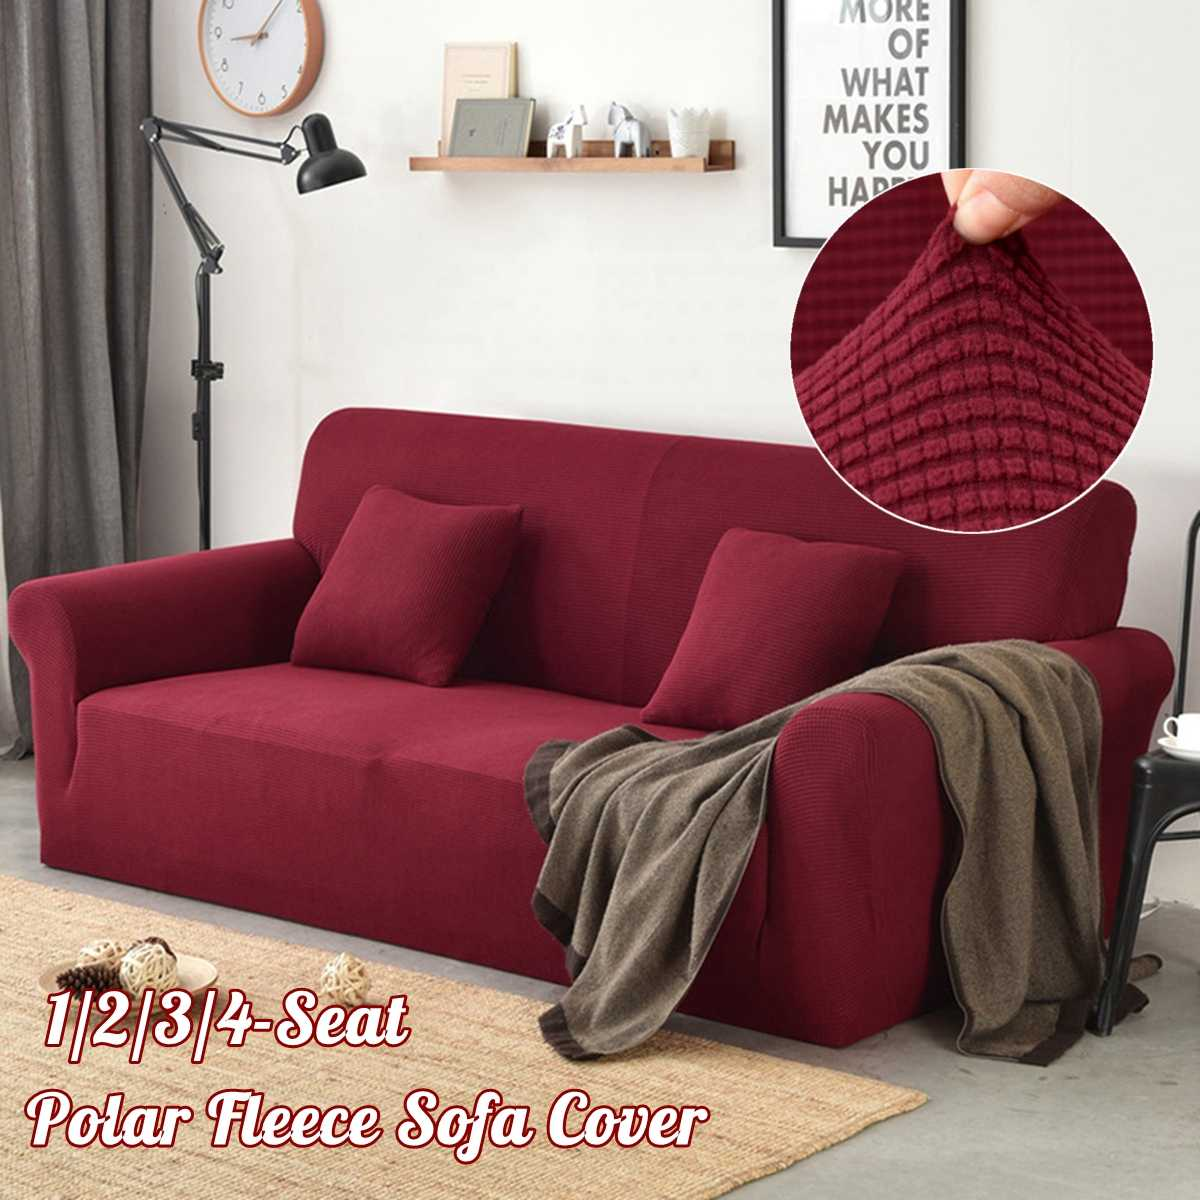 US $5.09 41% OFF|Polar Fleece Slipcover Sofa Solid Color Couch Cover  Elastic full sofa Cover 1/2/3/4 seater Stretch Pillow Case Chair Covers  Red-in ...